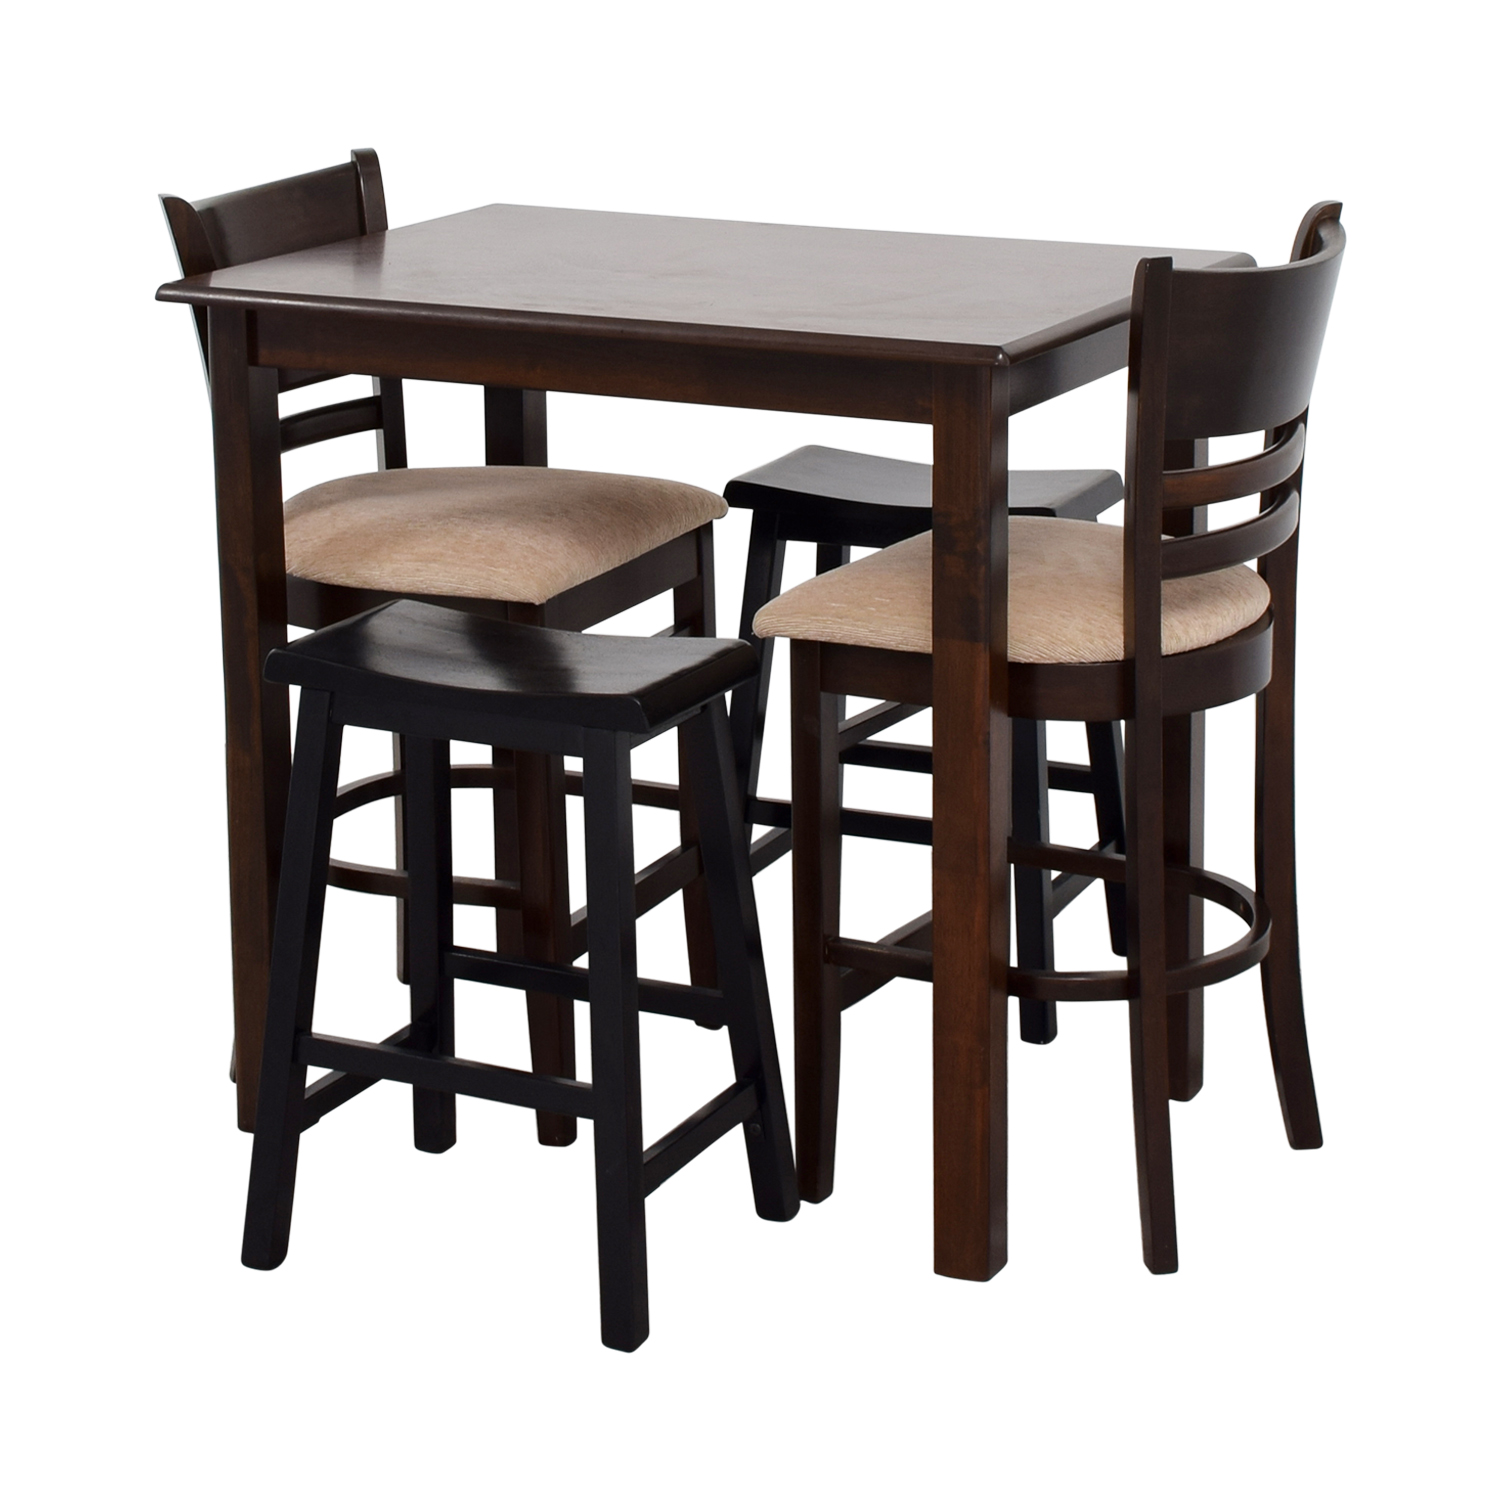 Table With Two Chairs 70 Off Simple Bar Table With Two Chairs And Two Stools